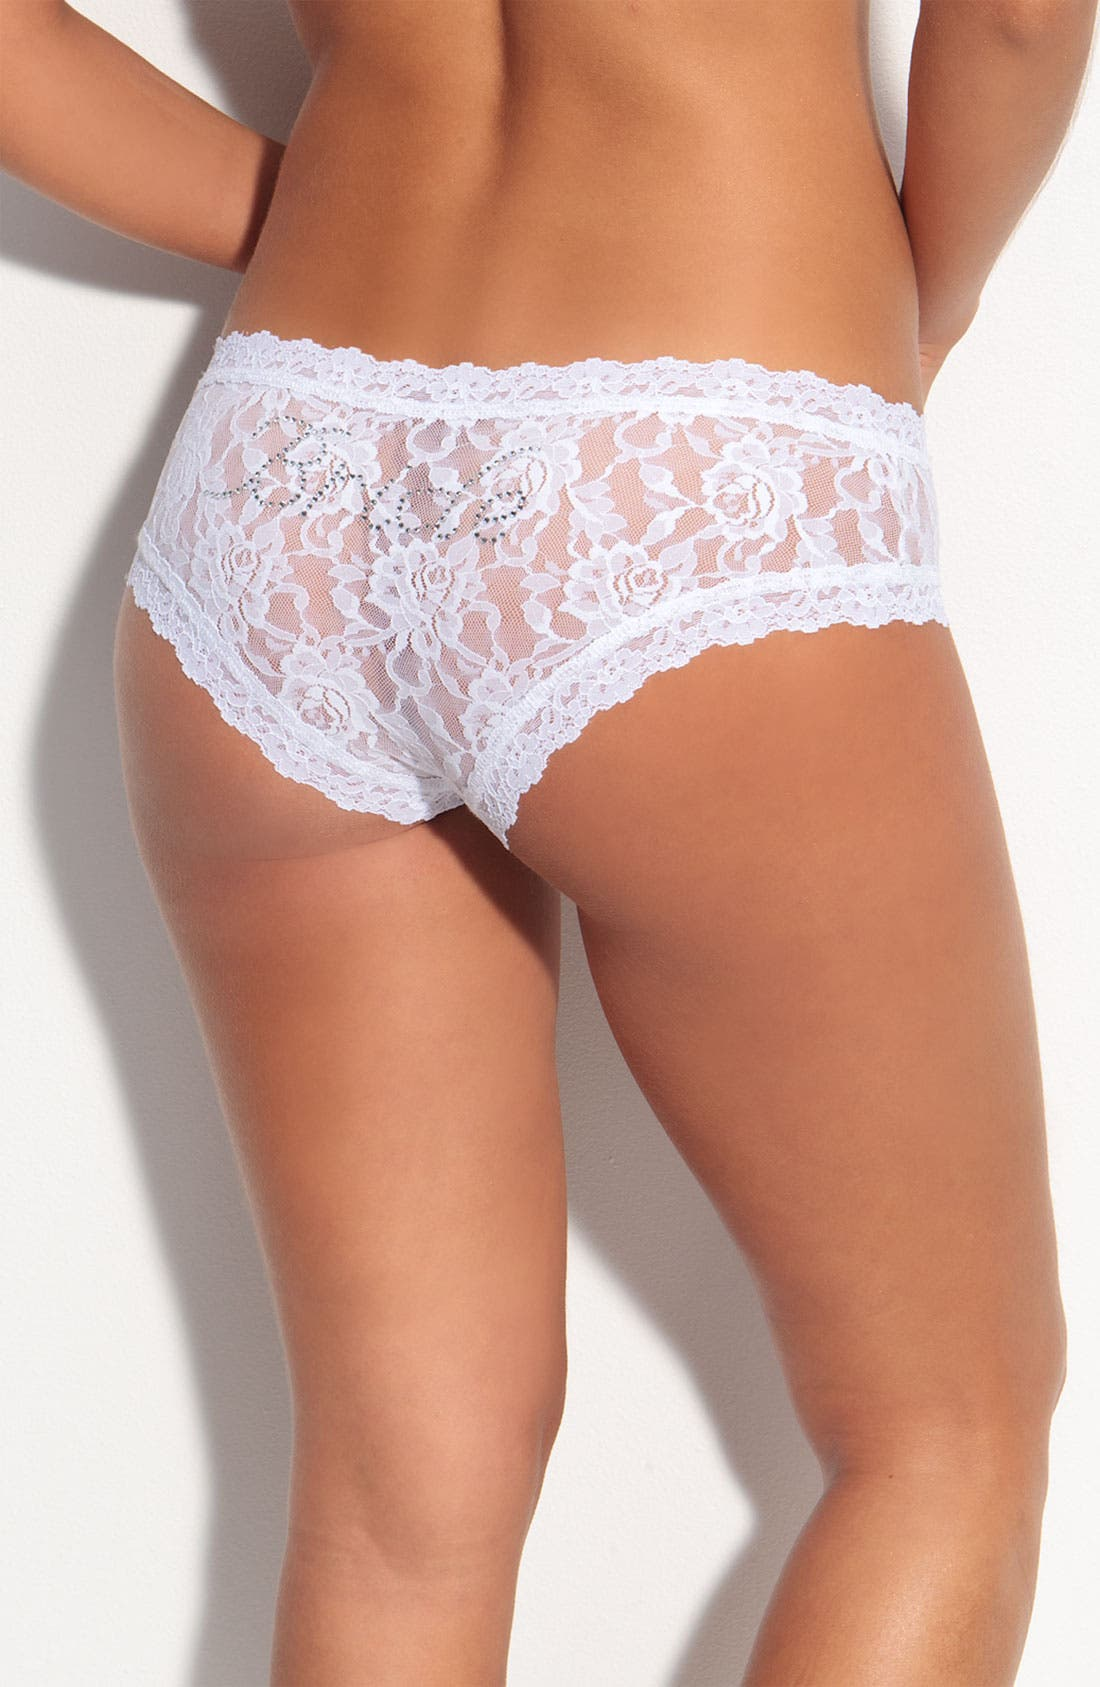 Alternate Image 1 Selected - Hanky Panky 'Bride' Lace Hipster Panties